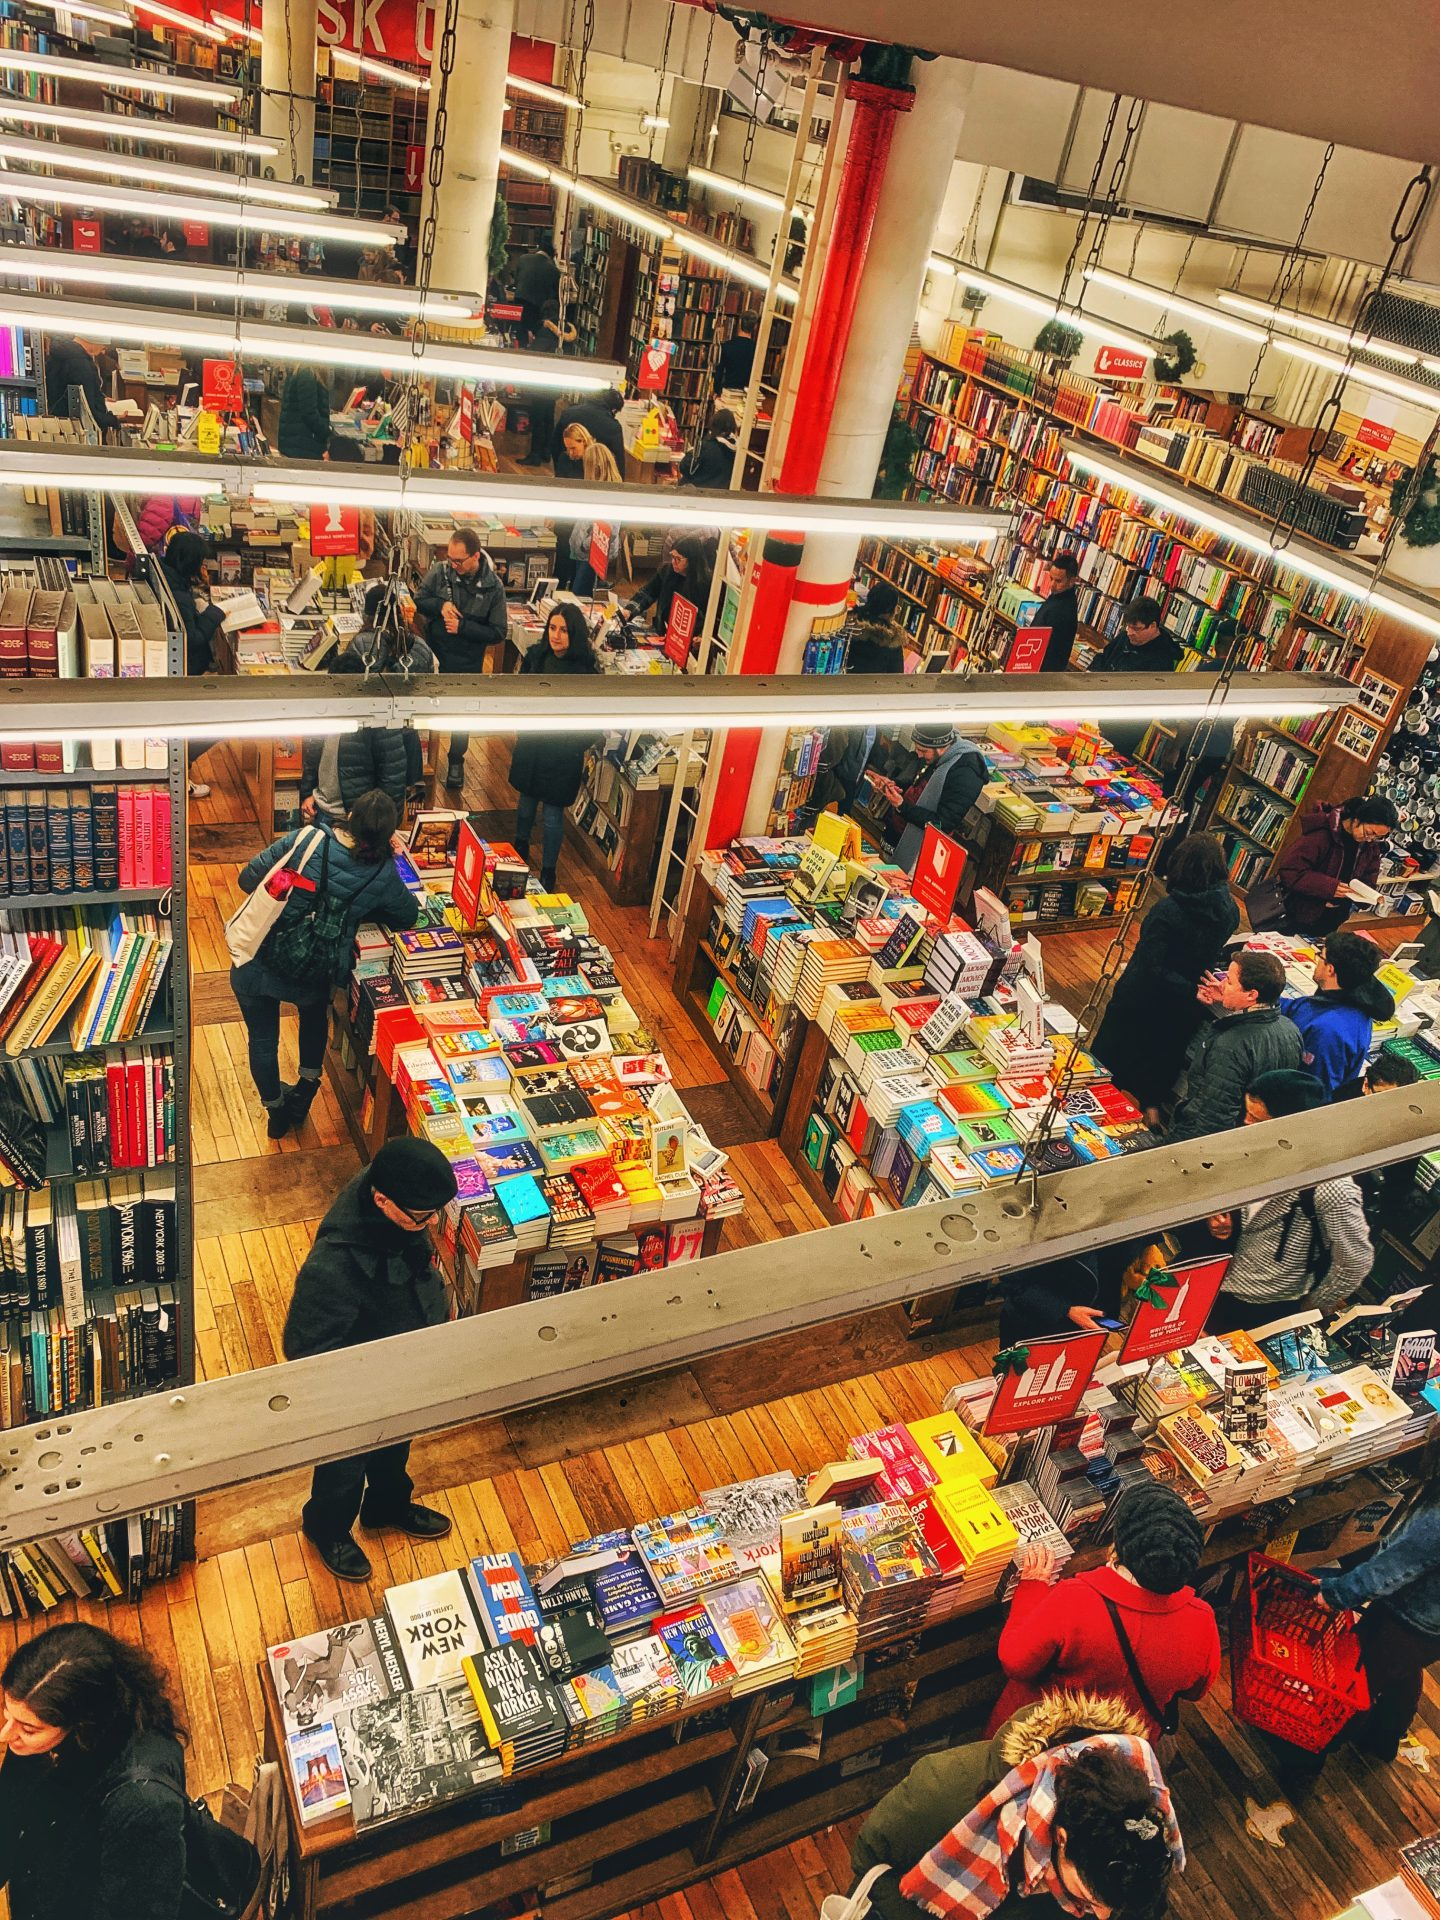 Strand Book Store, Dash & Lily's Book of Dares tour